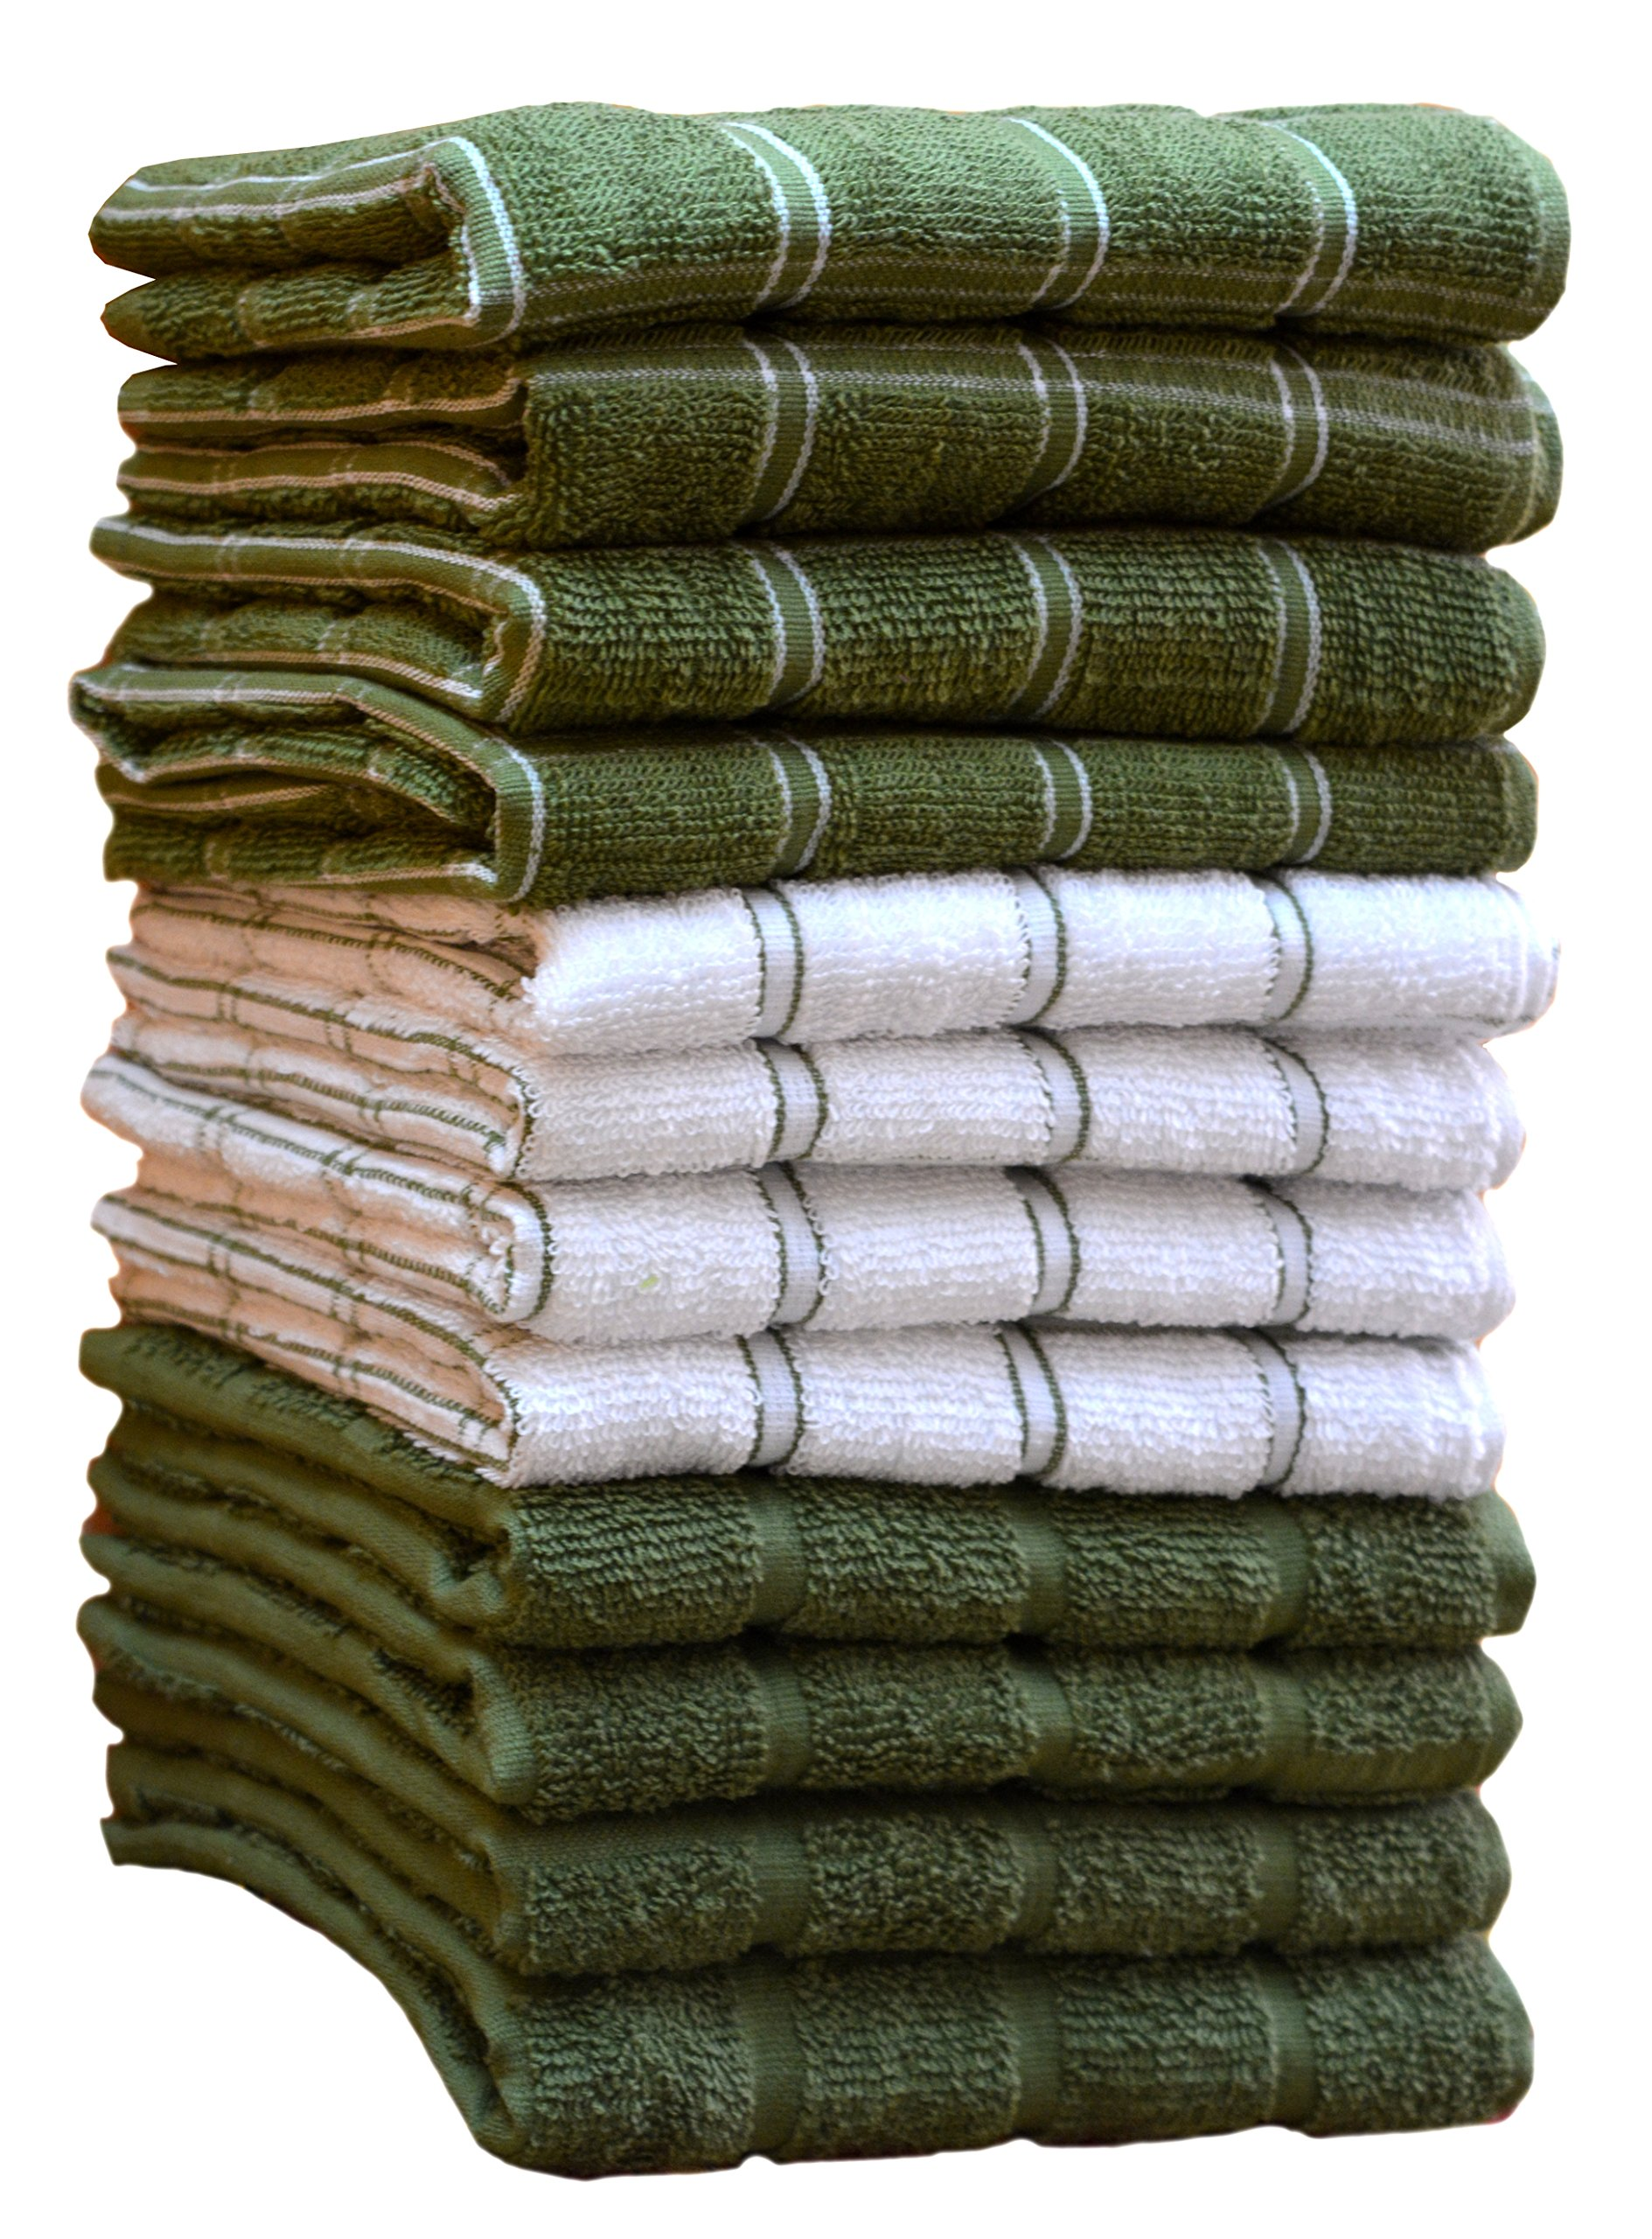 HomeLabels Kitchen Towels (12 Pack, 15''x 25'') 100% Premium Cotton, Machine Washable Extra Soft Set of 12, 3 Designs Dobby Weave Kitchen Dish Cloths, Tea Towels, Bar Towels, Green